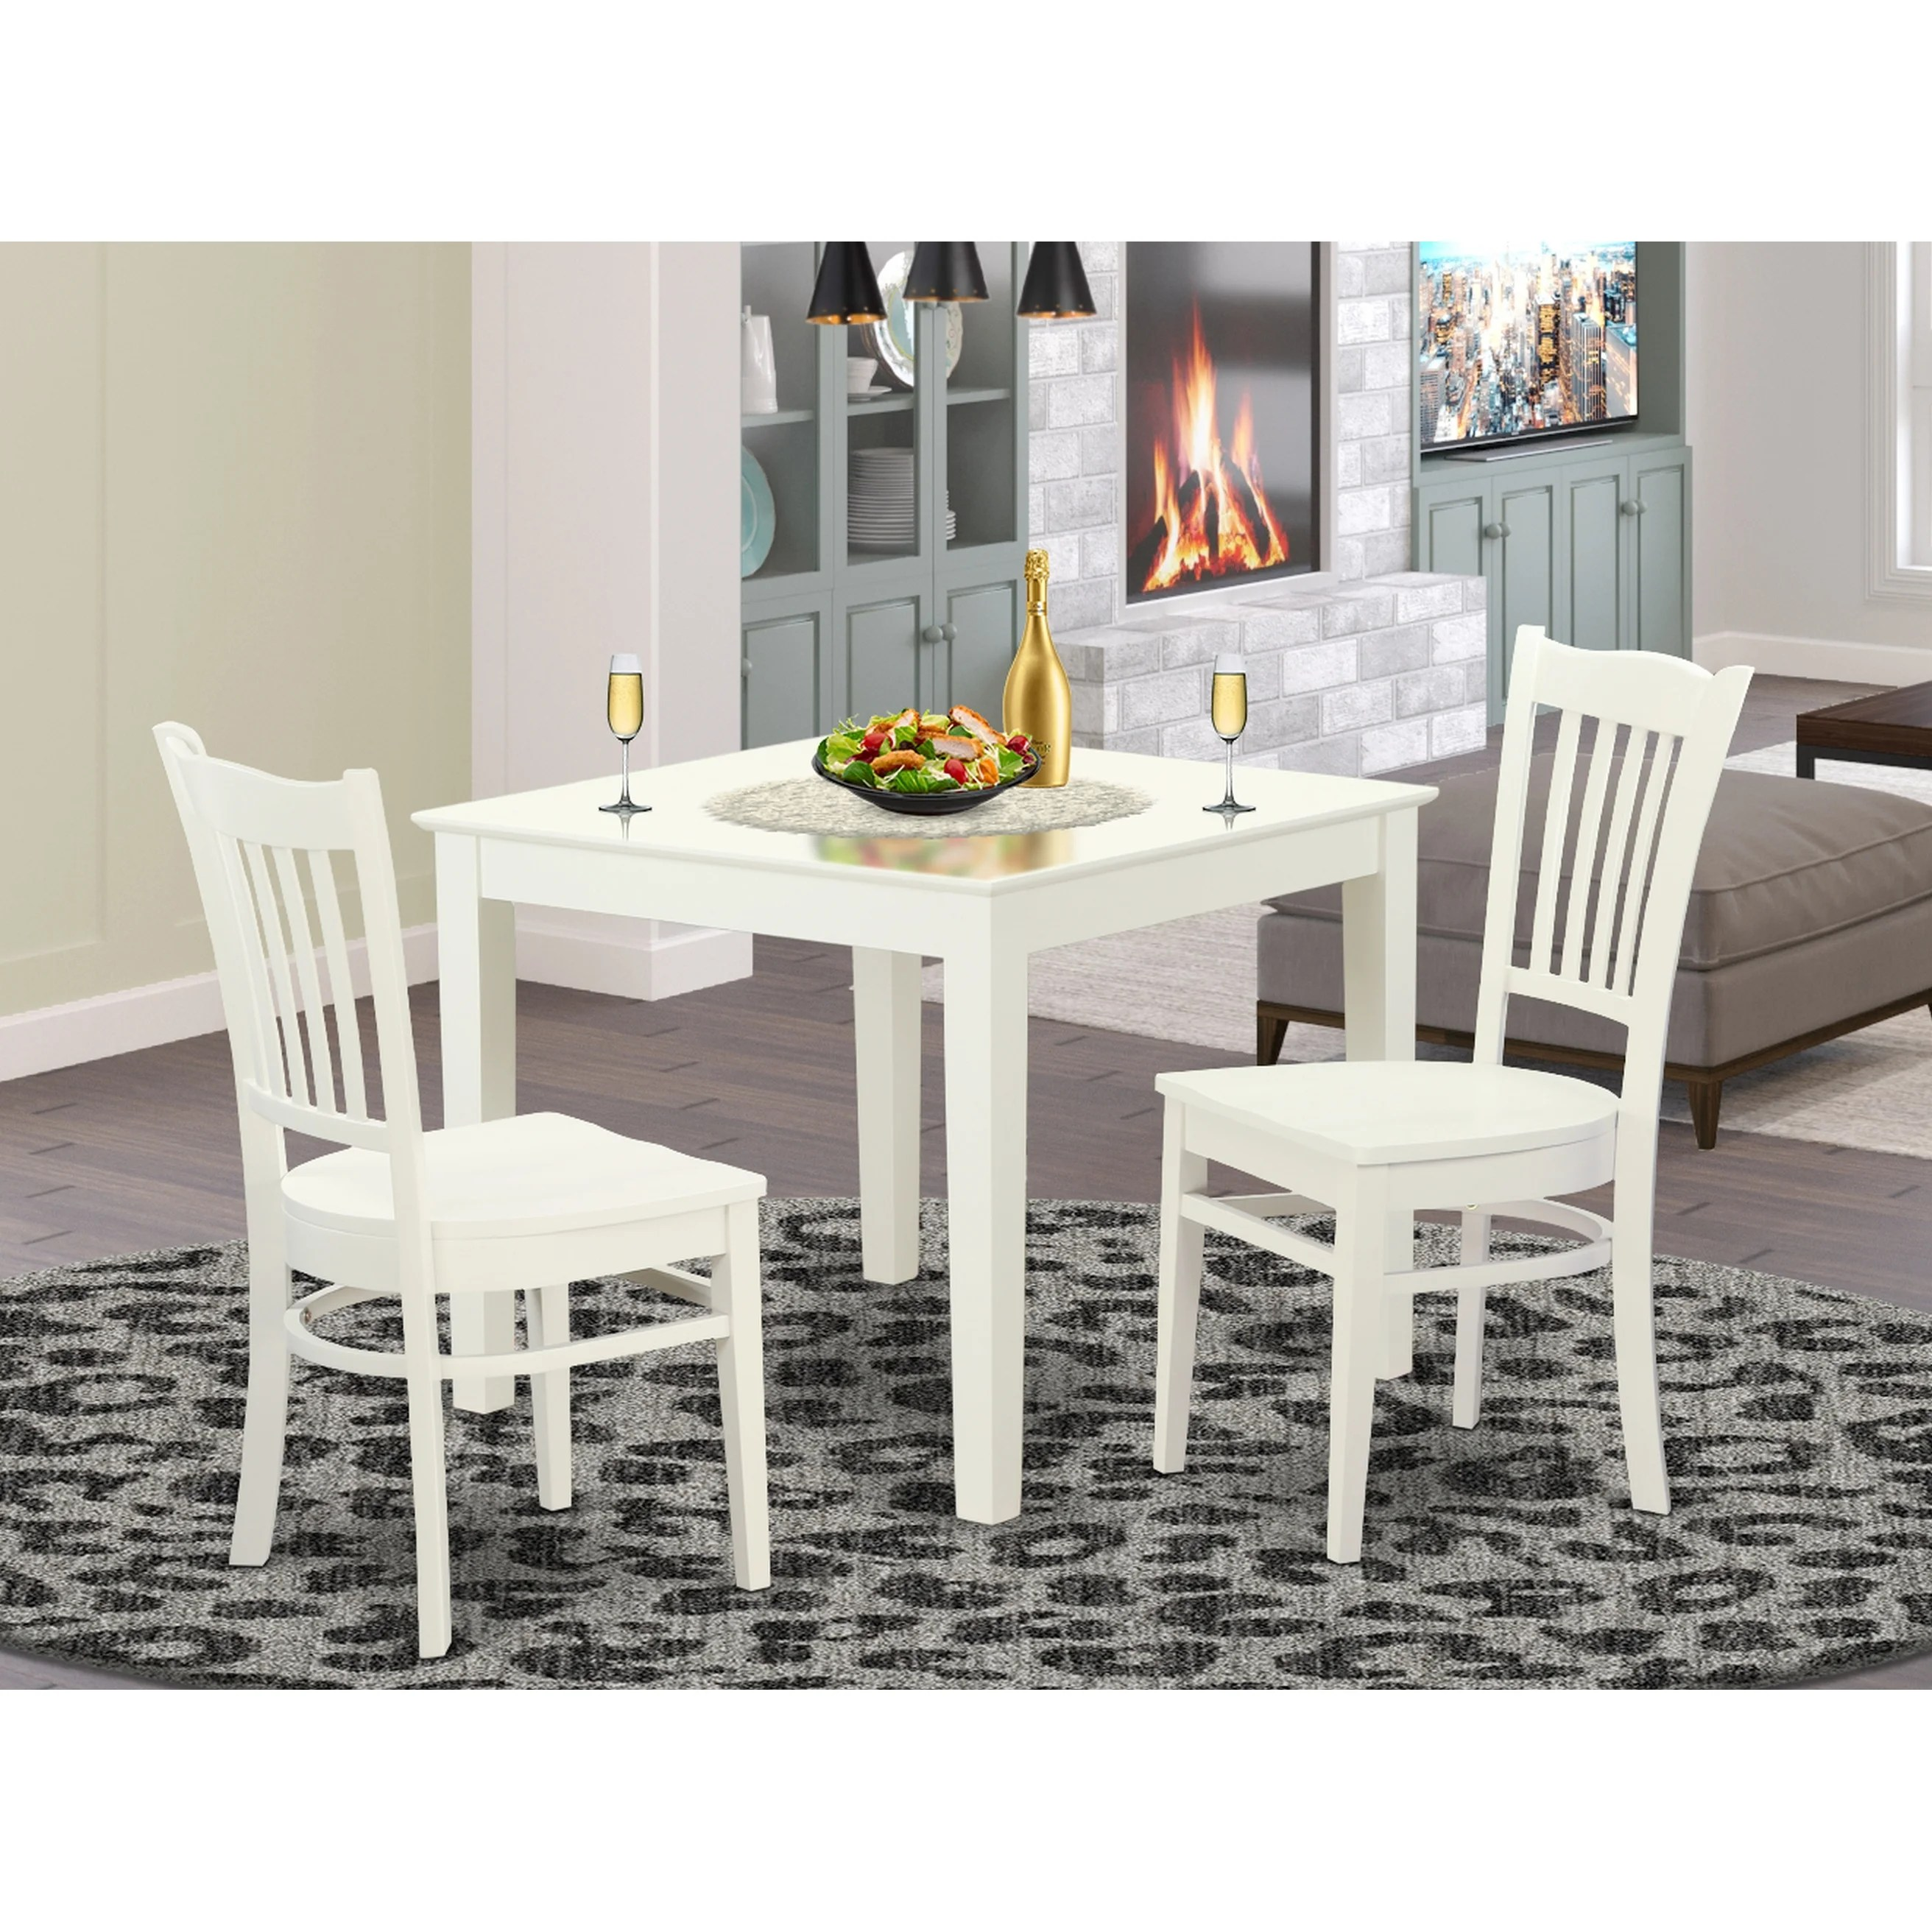 Oxgr3 W 3 Piece Breakfast Nook Table And 2 Wood Dining Room Chair In Linen White Finish Overstock 14366597